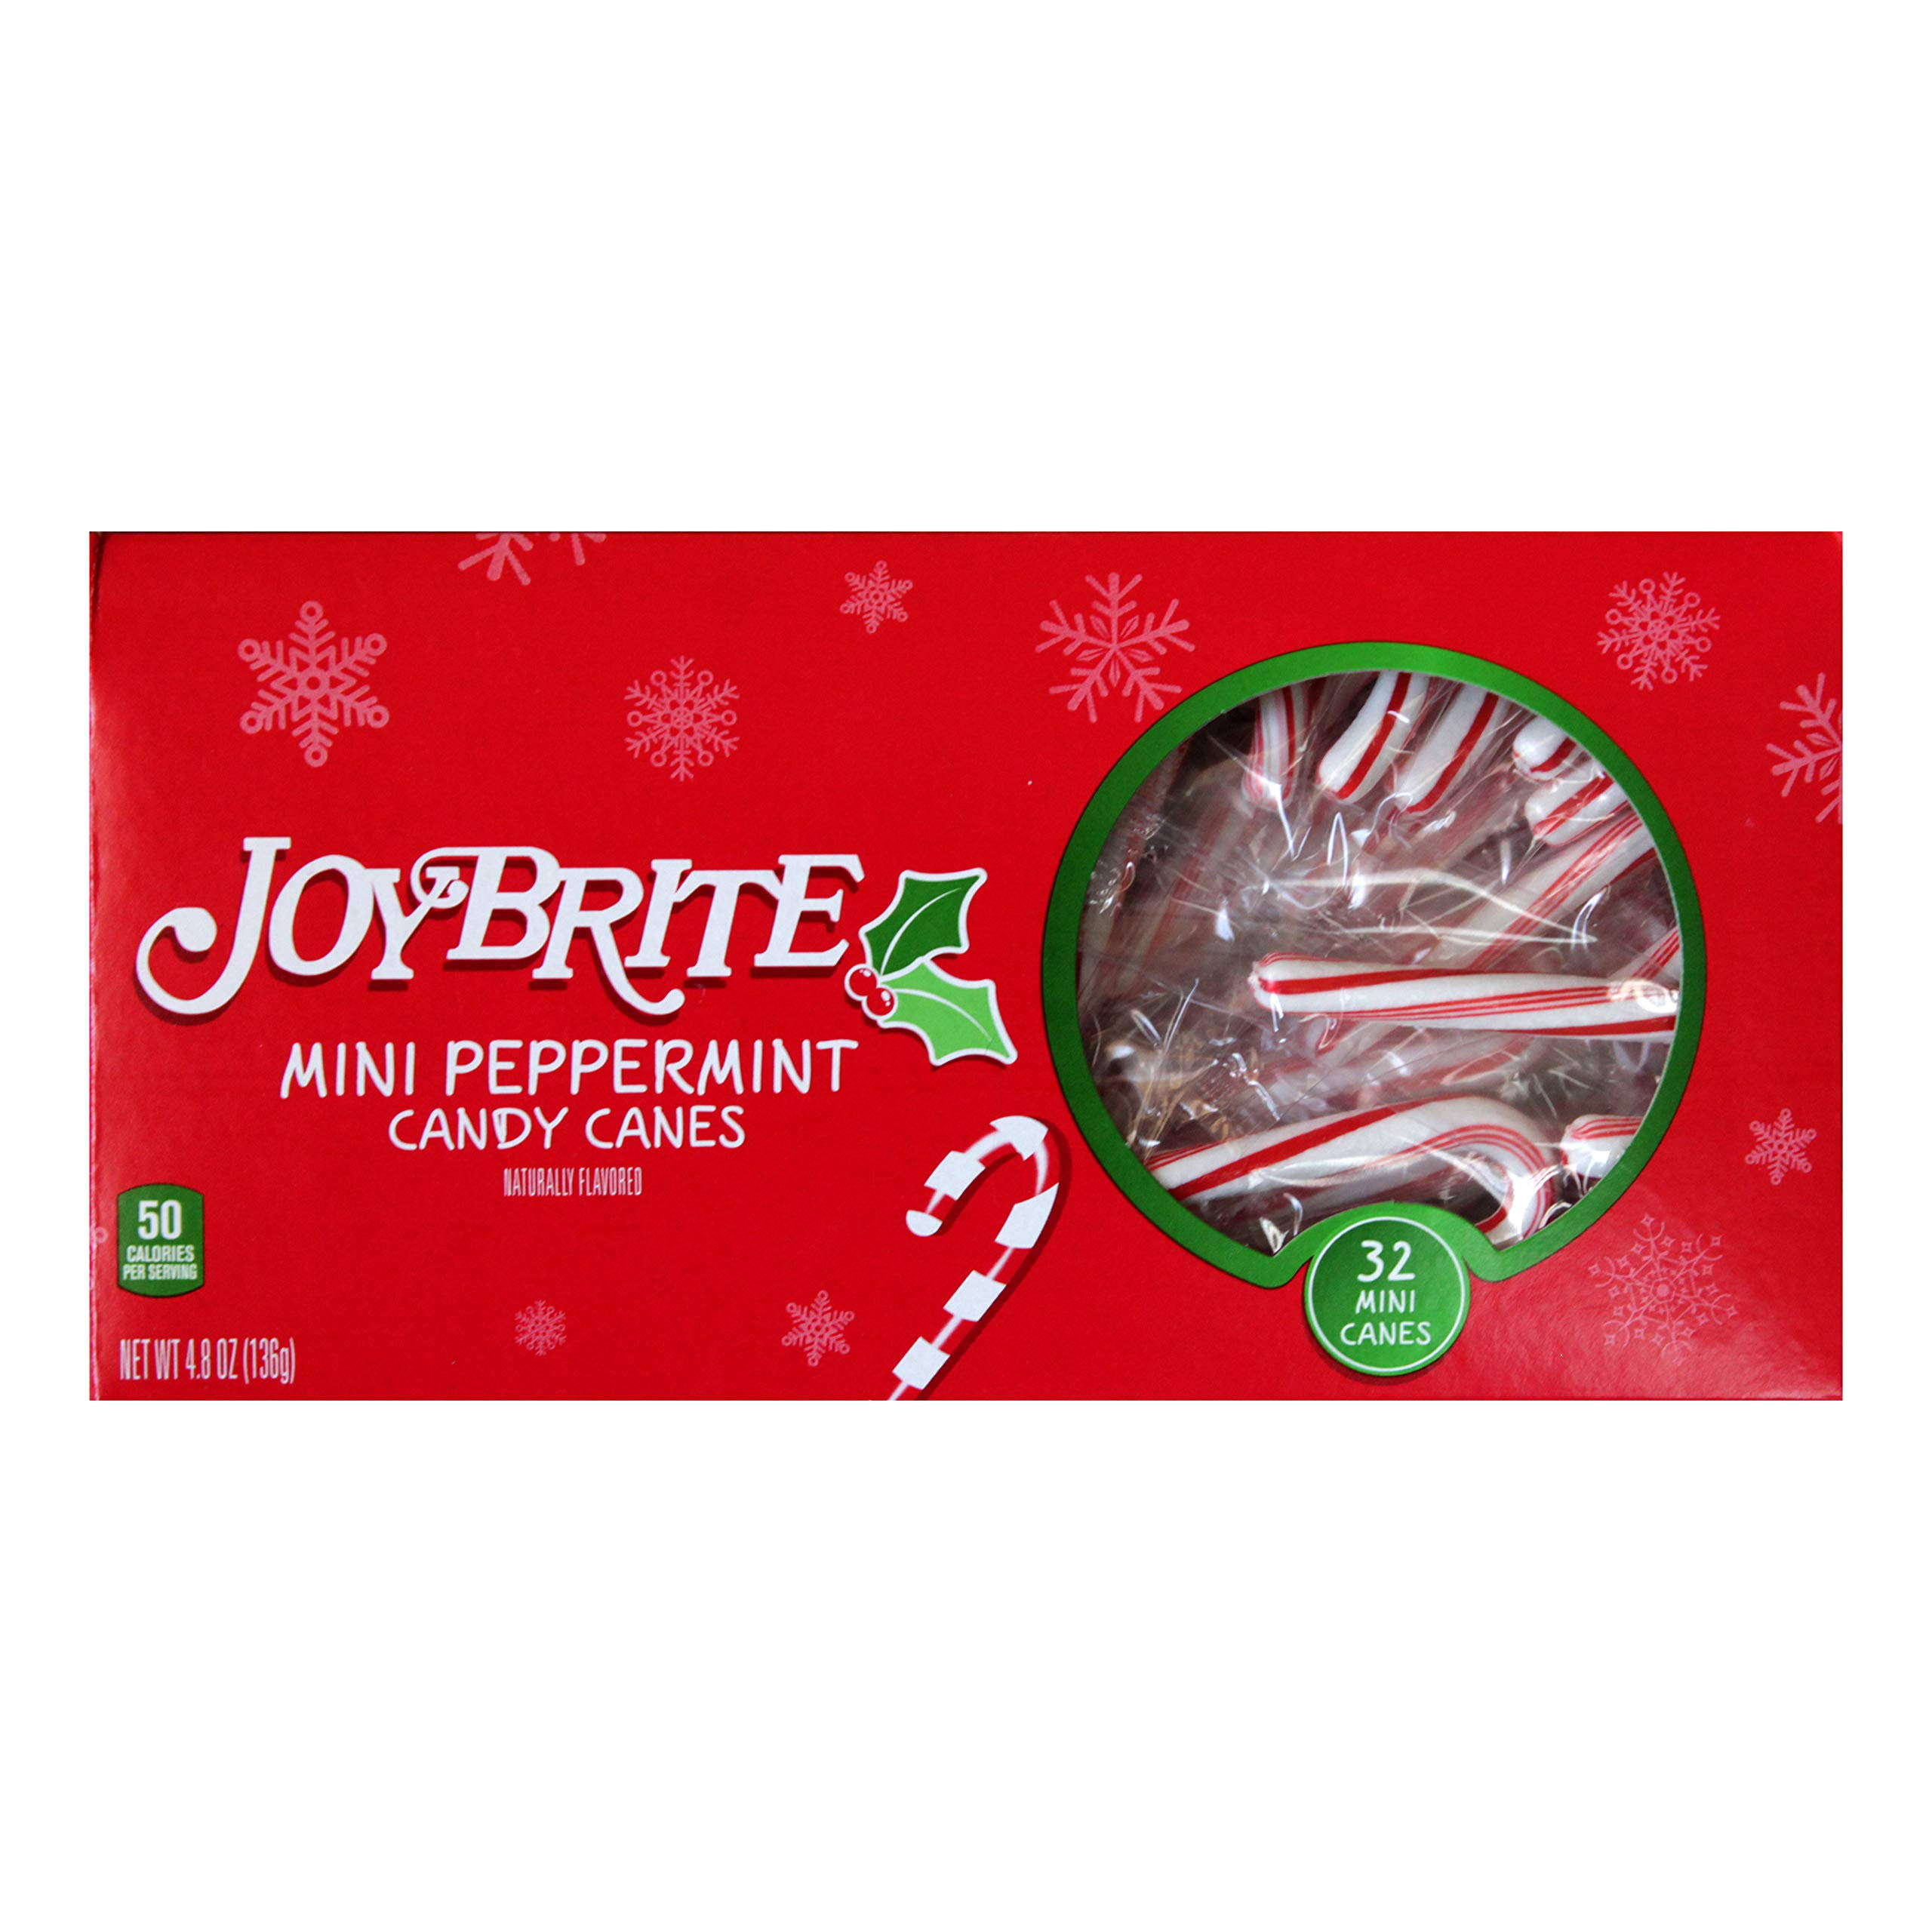 Joybrite 32pc Mini Peppermint Candy Canes Christmas